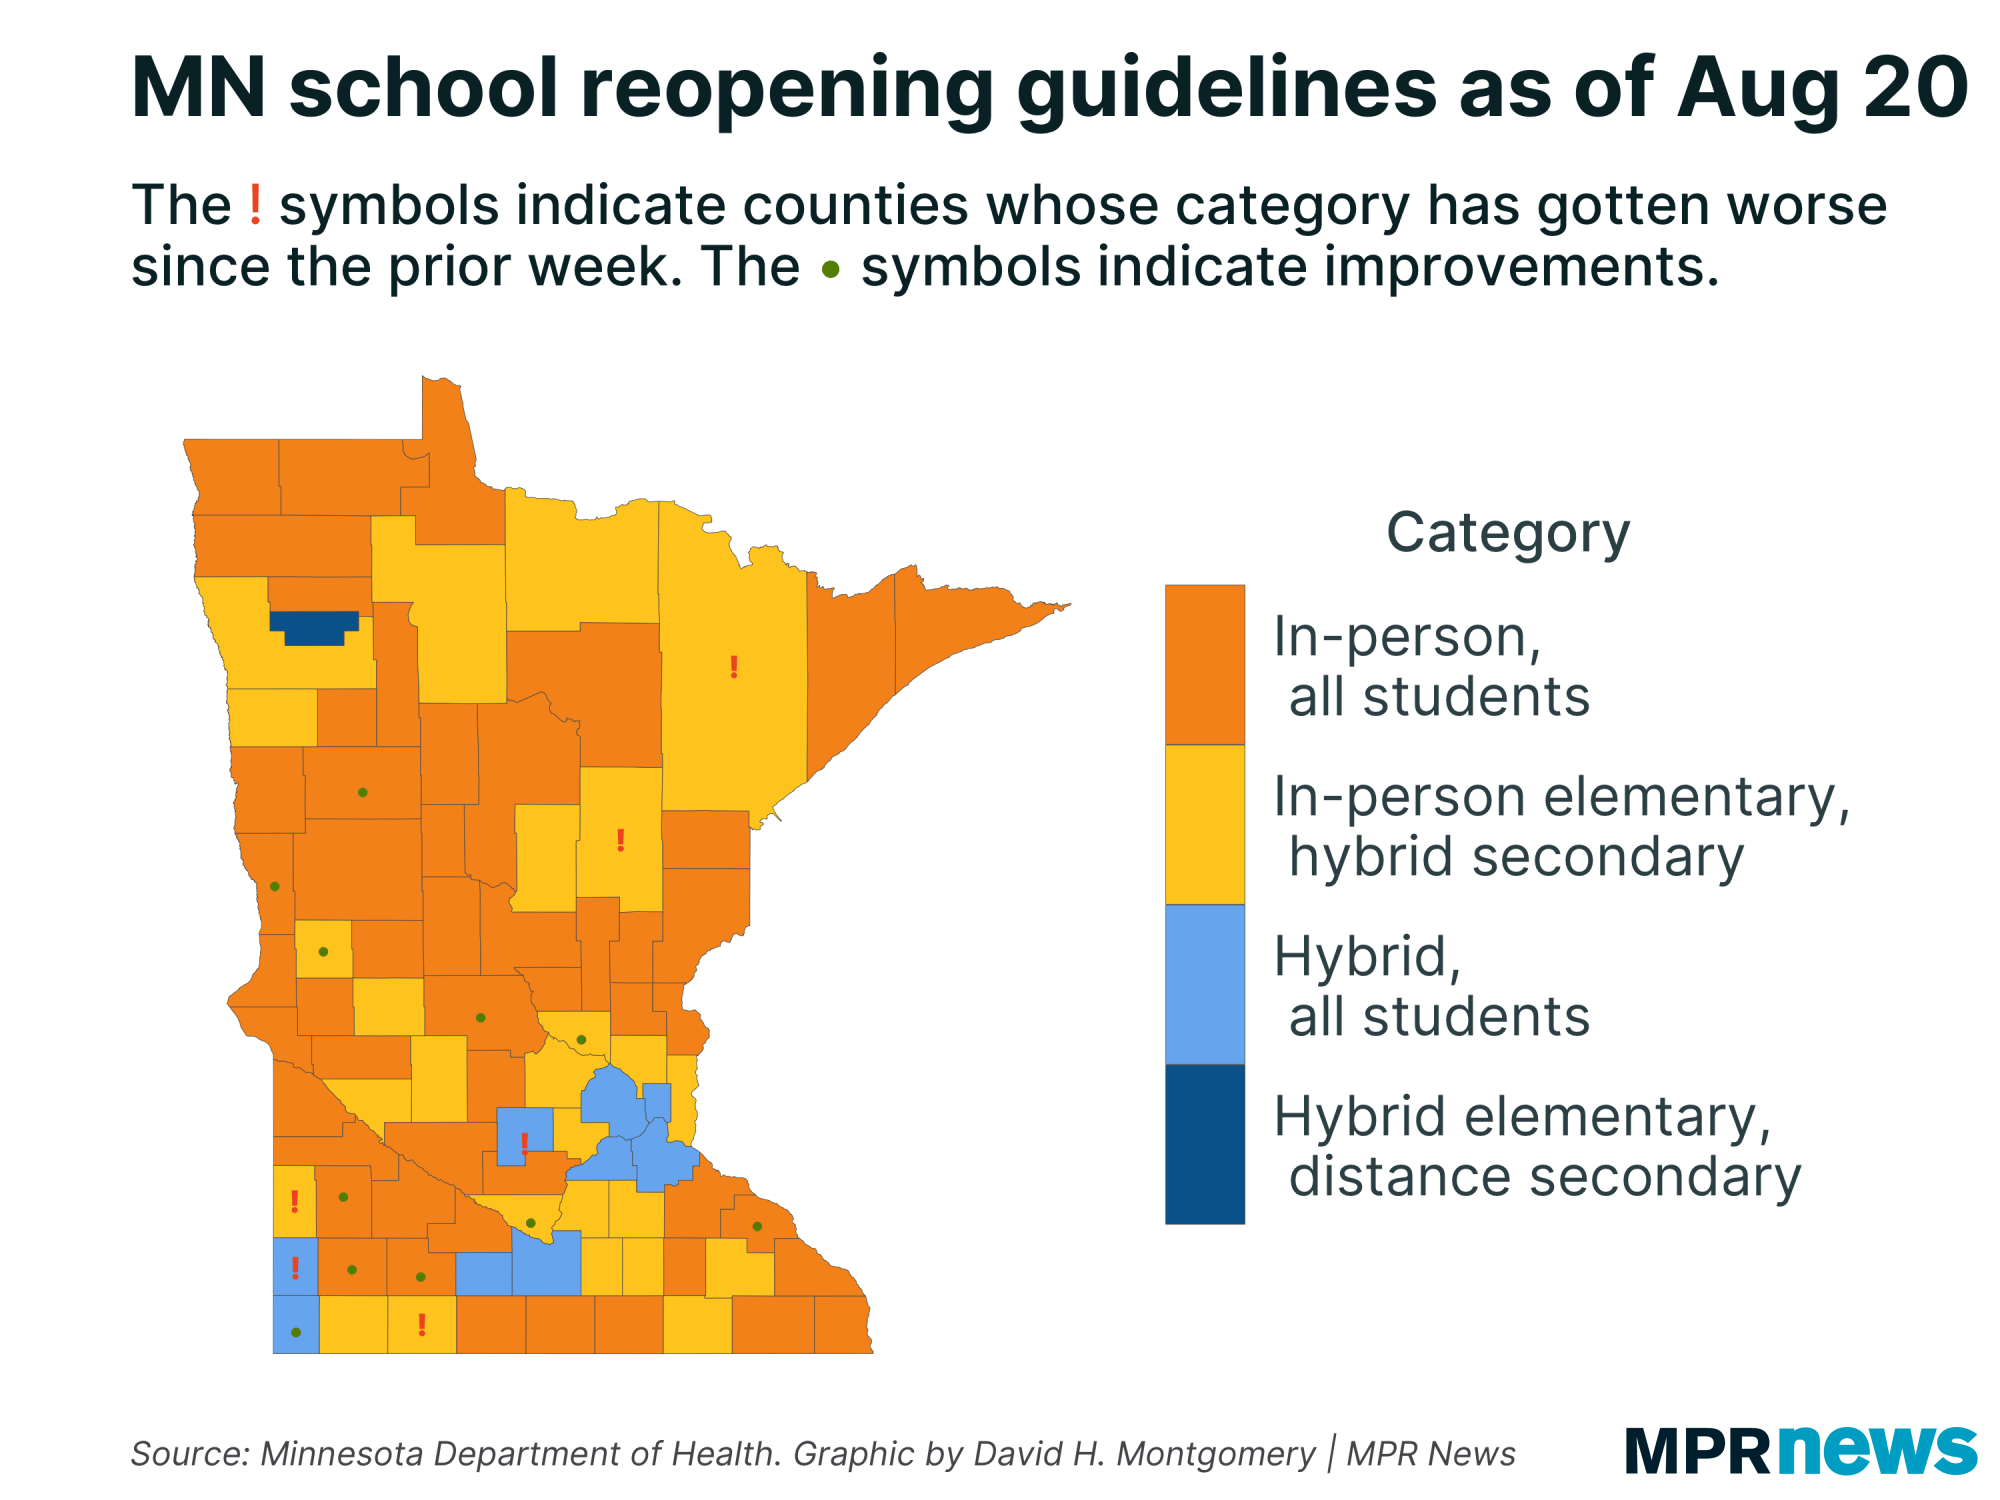 Recommendations for school reopening based on COVID-19 case counts